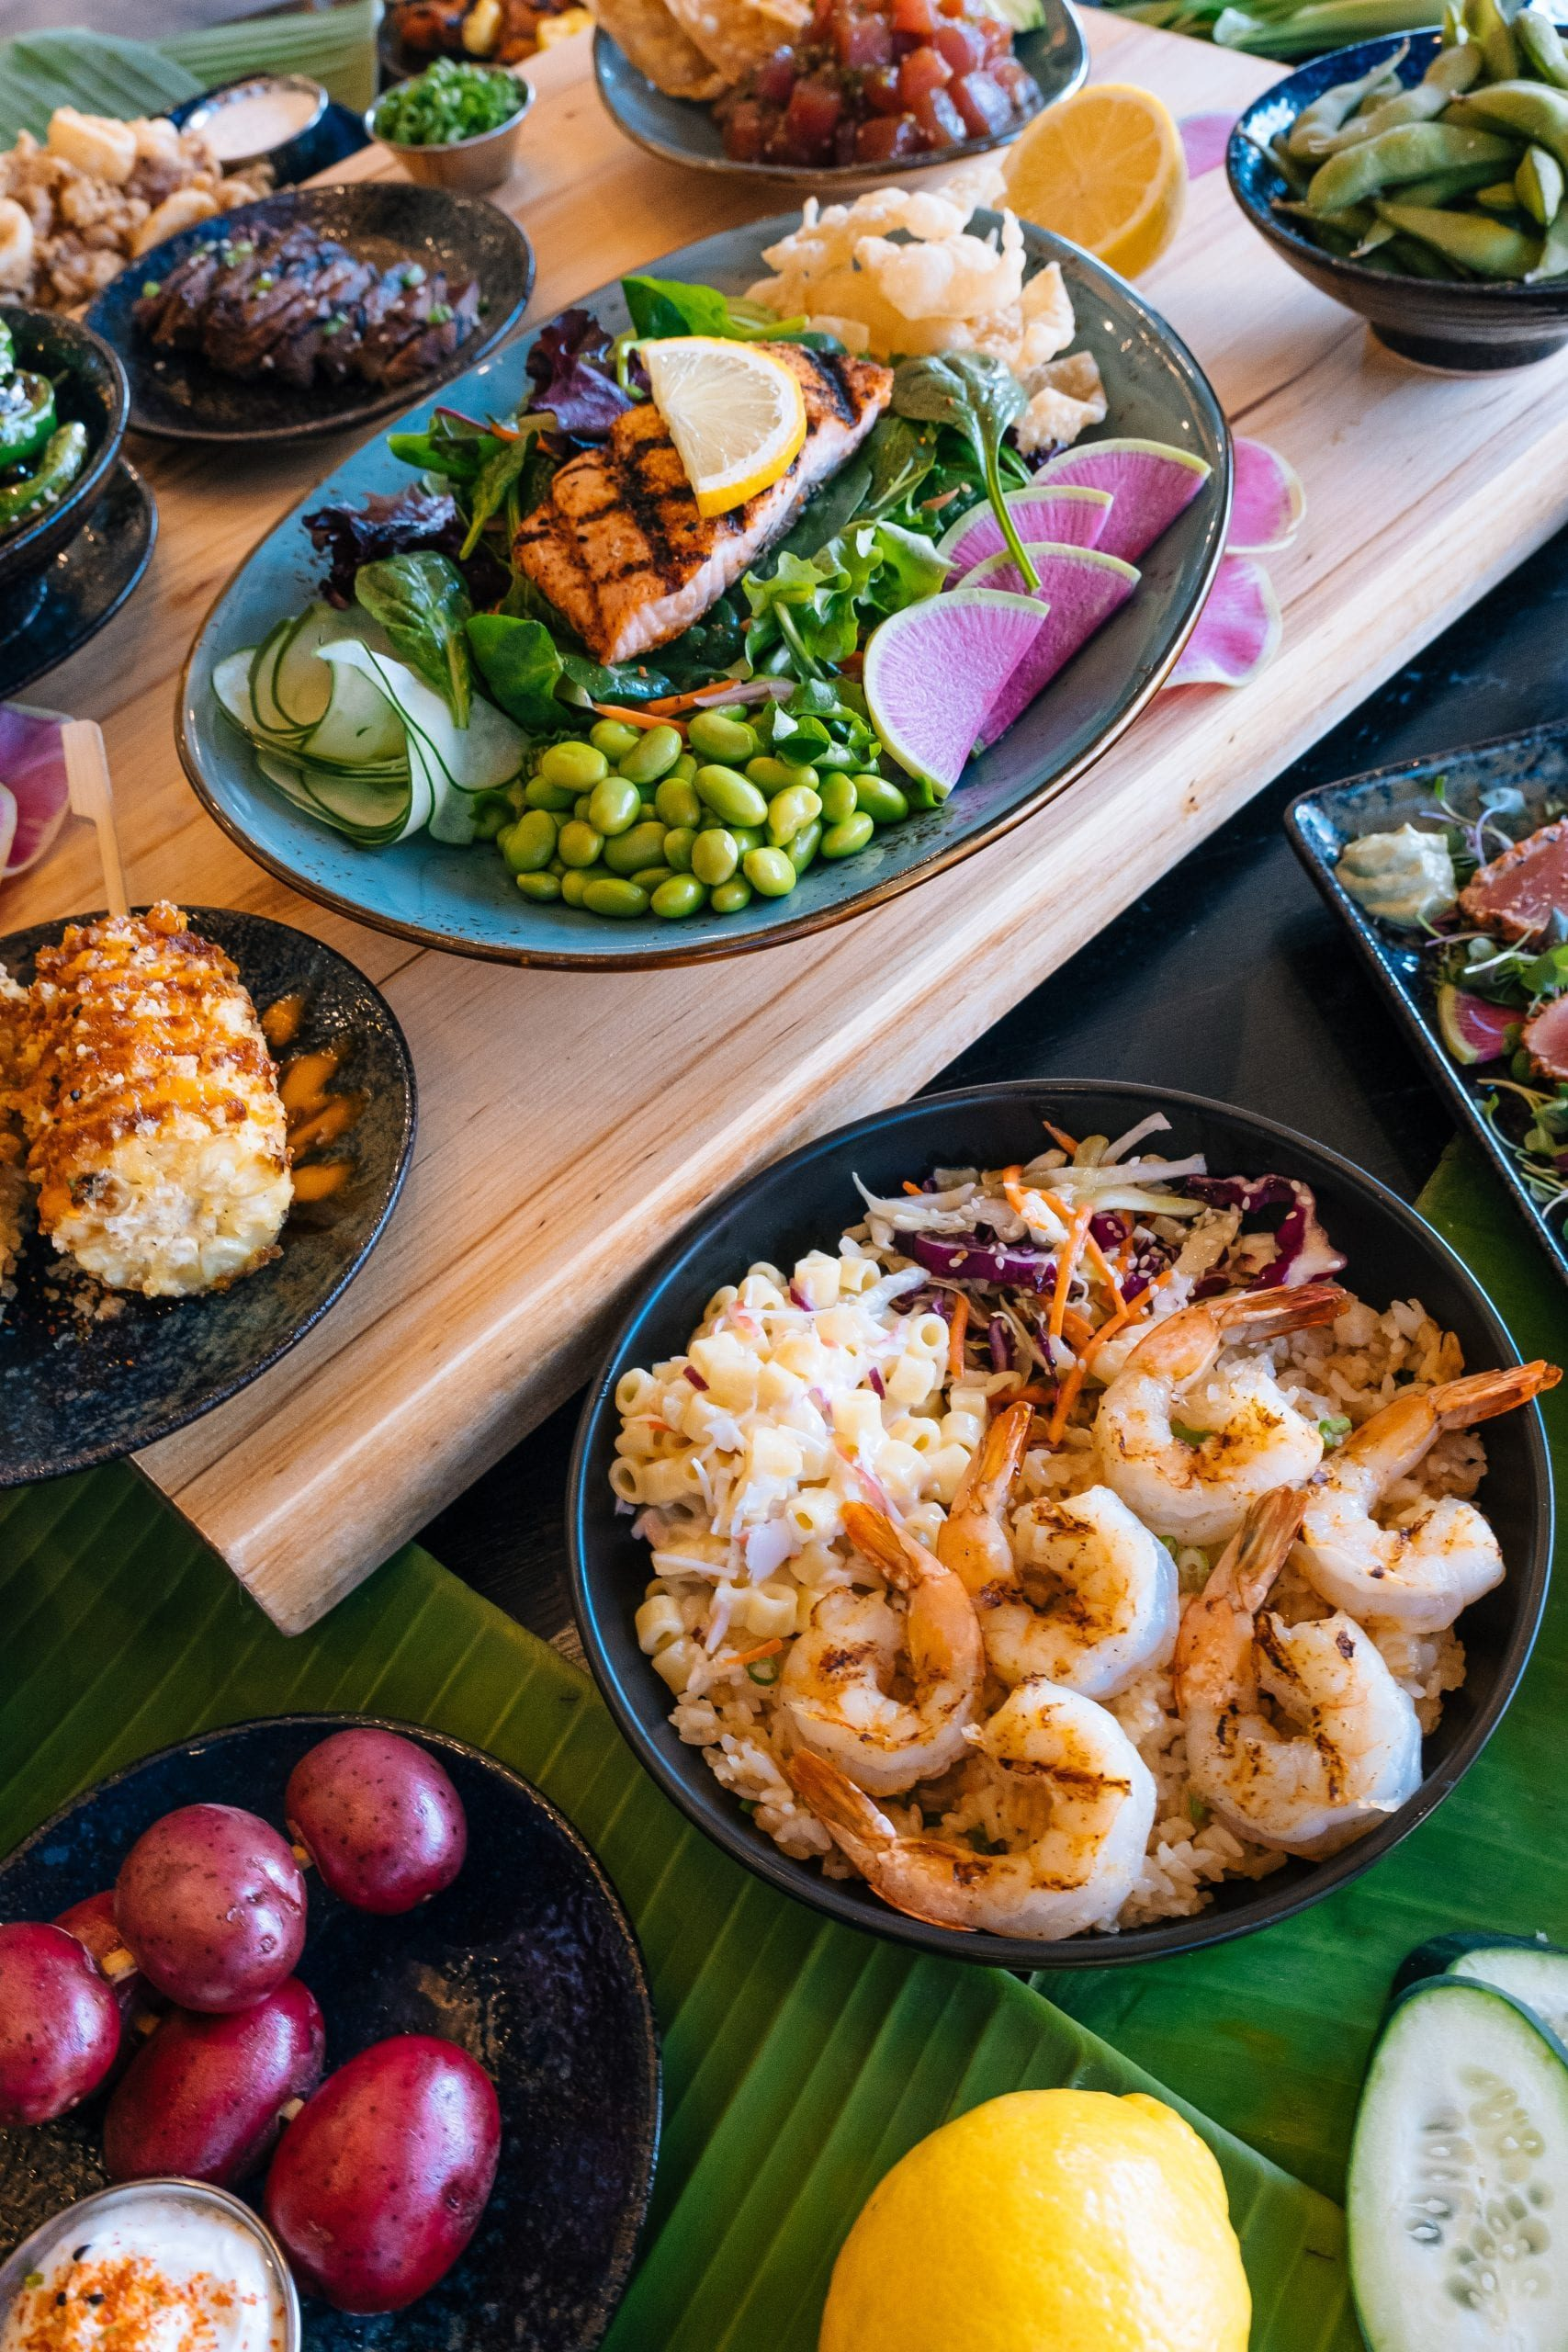 Vertical Close up of Makai Food and Poke Spread out on table